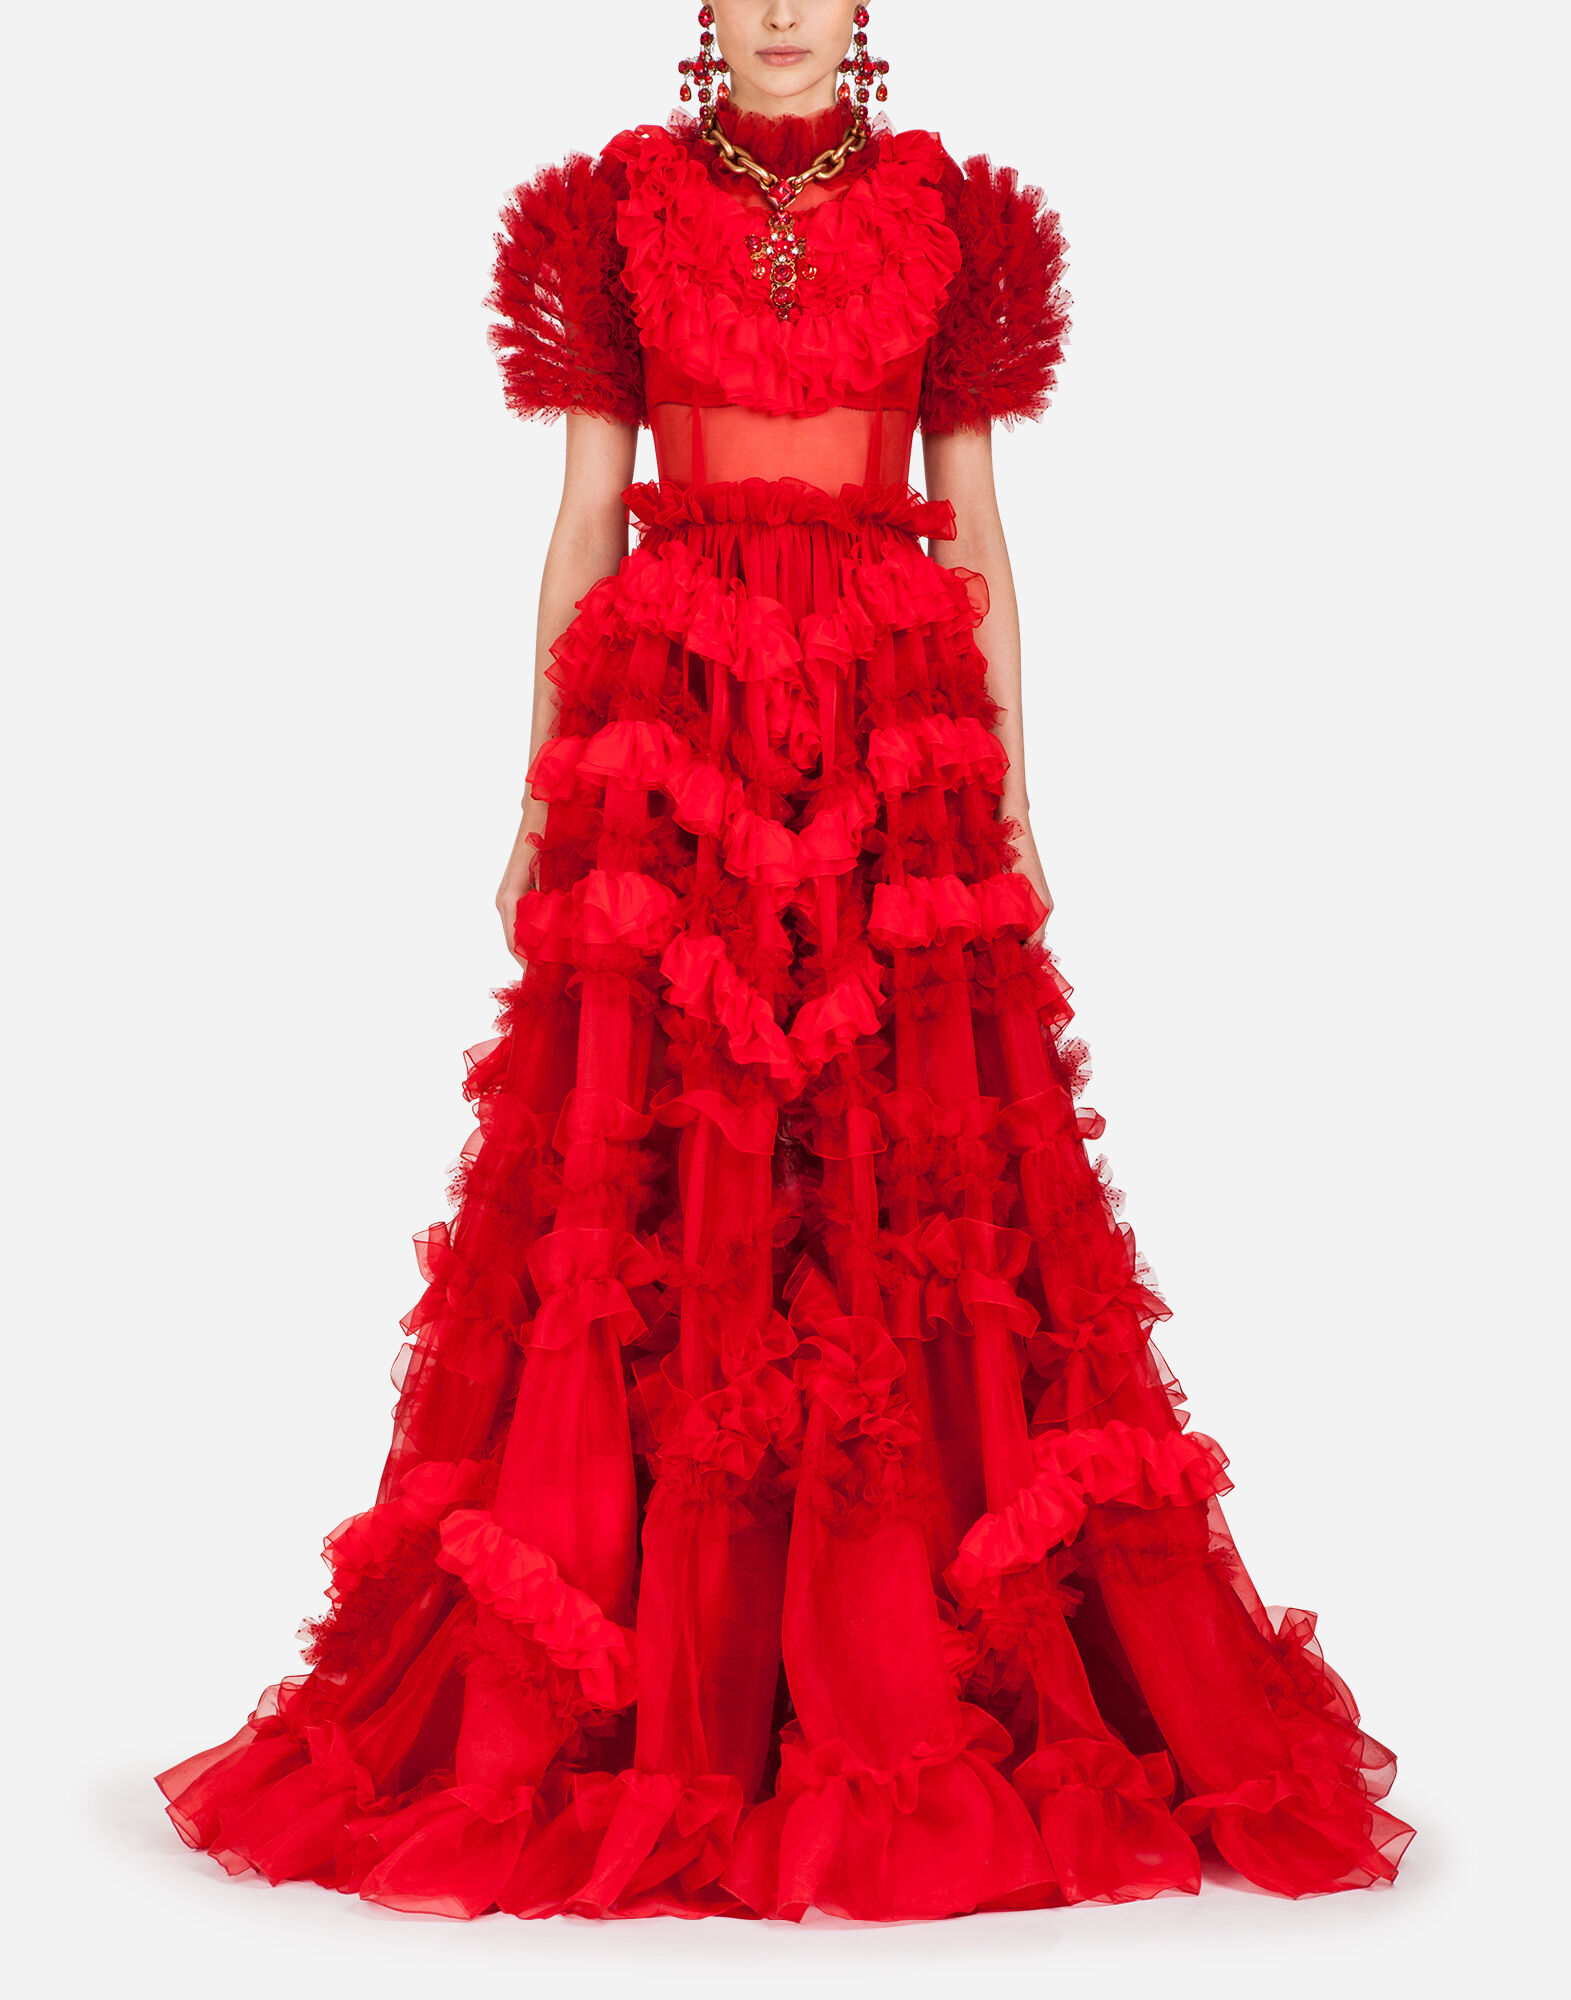 Organza Gown,Organza Gown, Red Organza Dress,Organza Dresses,Dolce and Gabbana Dresses On Sale,Organza Dresses,Red Organza Dress,Dolce and Gabbana Dresses,Red Lace and Organza Dress ,dolce and gabbana dress,dolce and gabbana dress,dolce and gabbana dress,